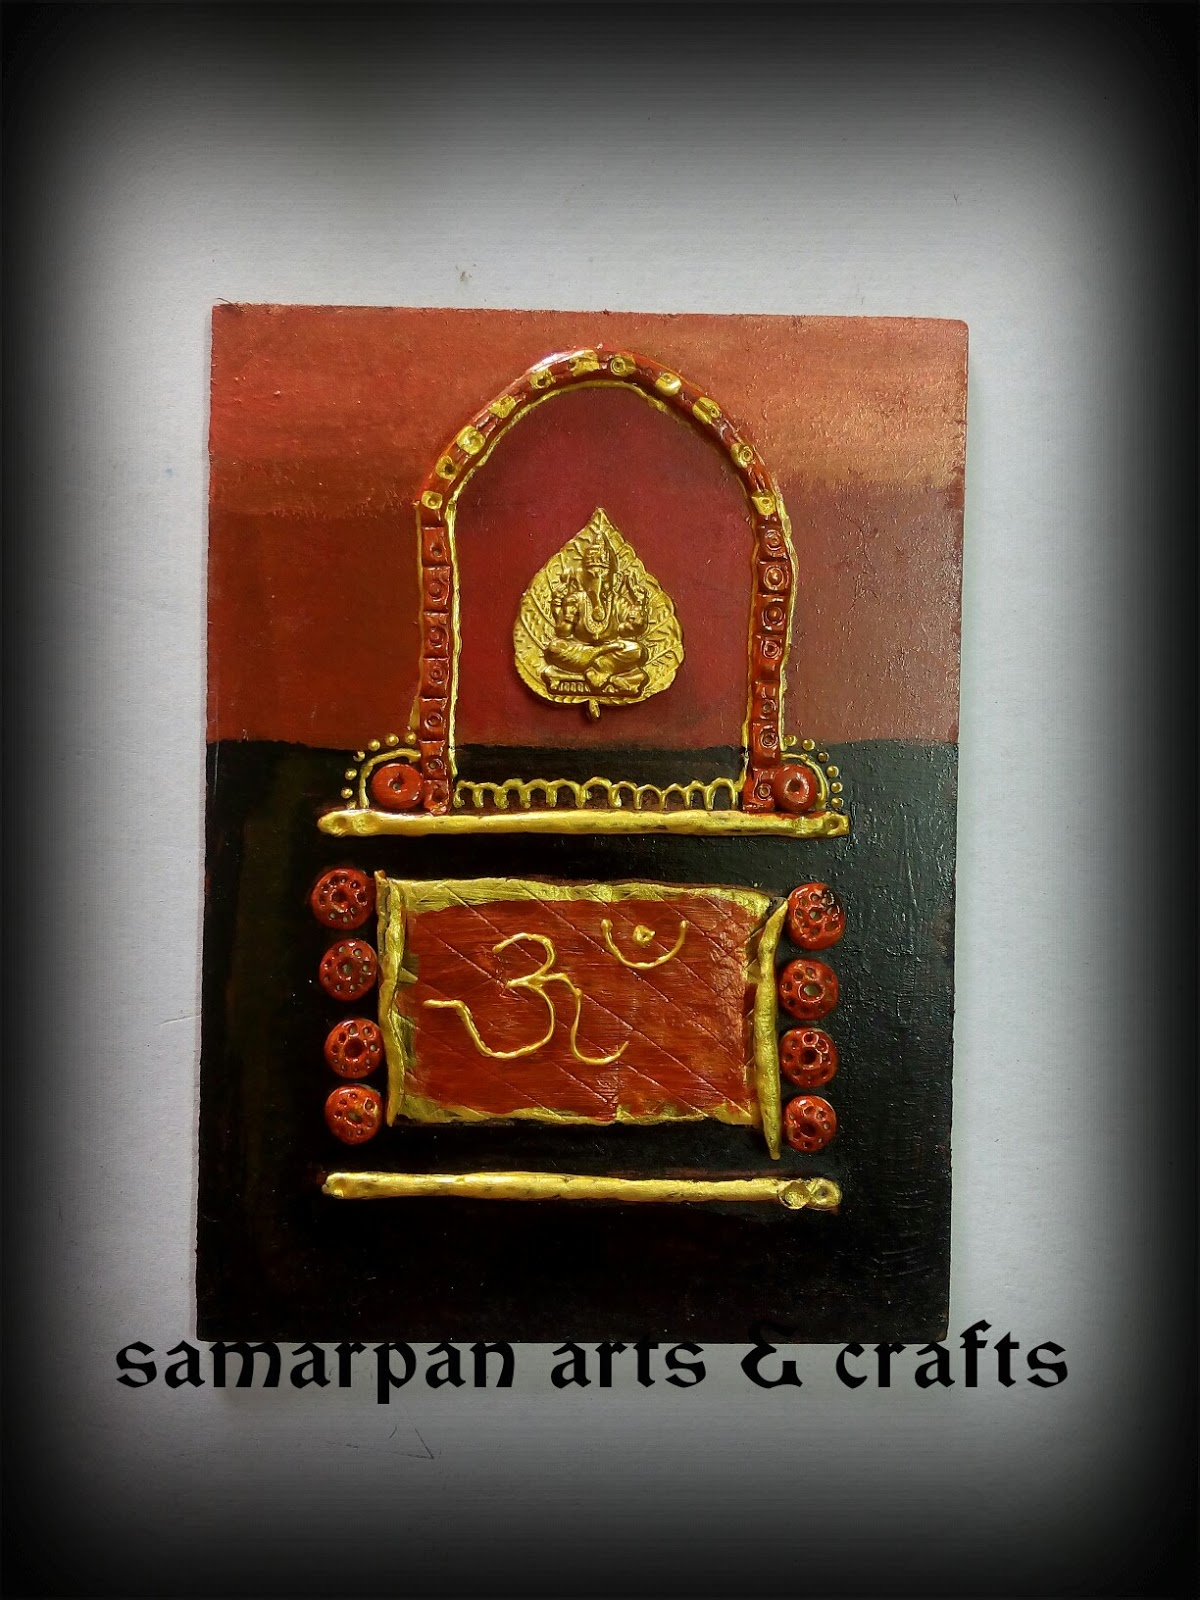 I Have Made This Beautiful Wall MuralThe Colors Used Are Copper And BlackFEVICRYL HOBBY IDEAS Enhanced With 3doutliner